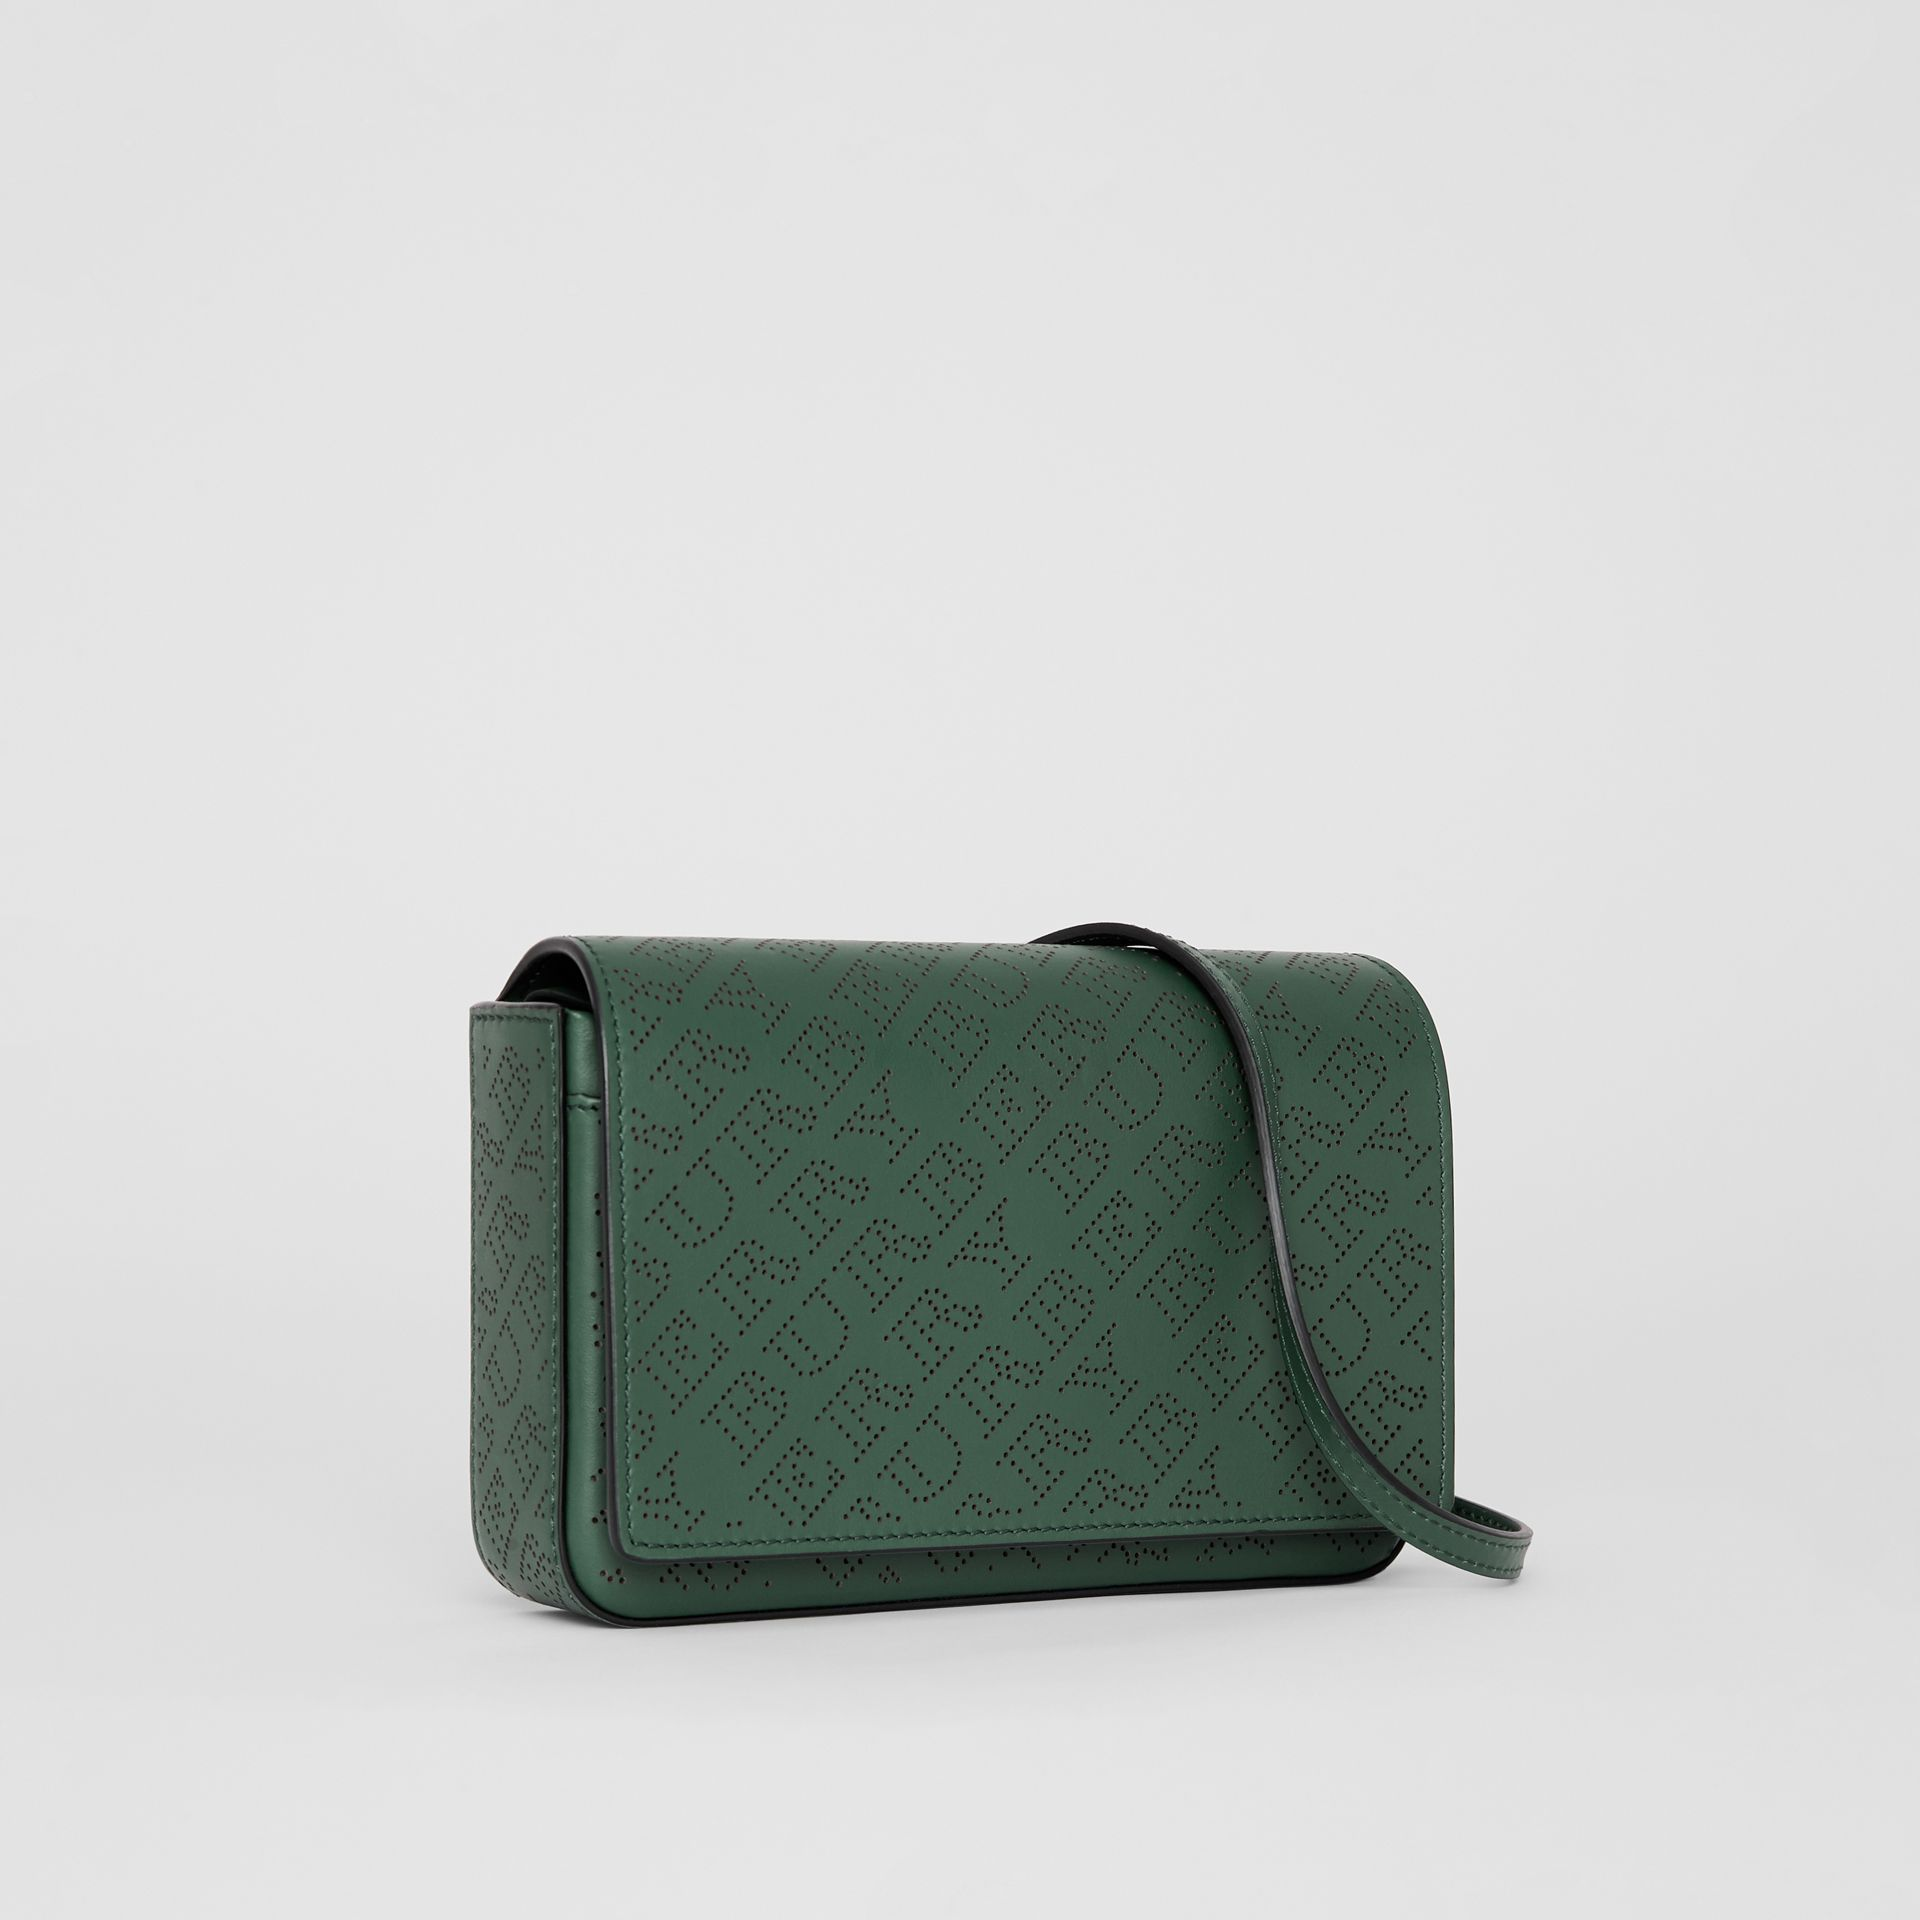 Perforated Logo Leather Wallet with Detachable Strap in Vintage Green - Women | Burberry Singapore - gallery image 4